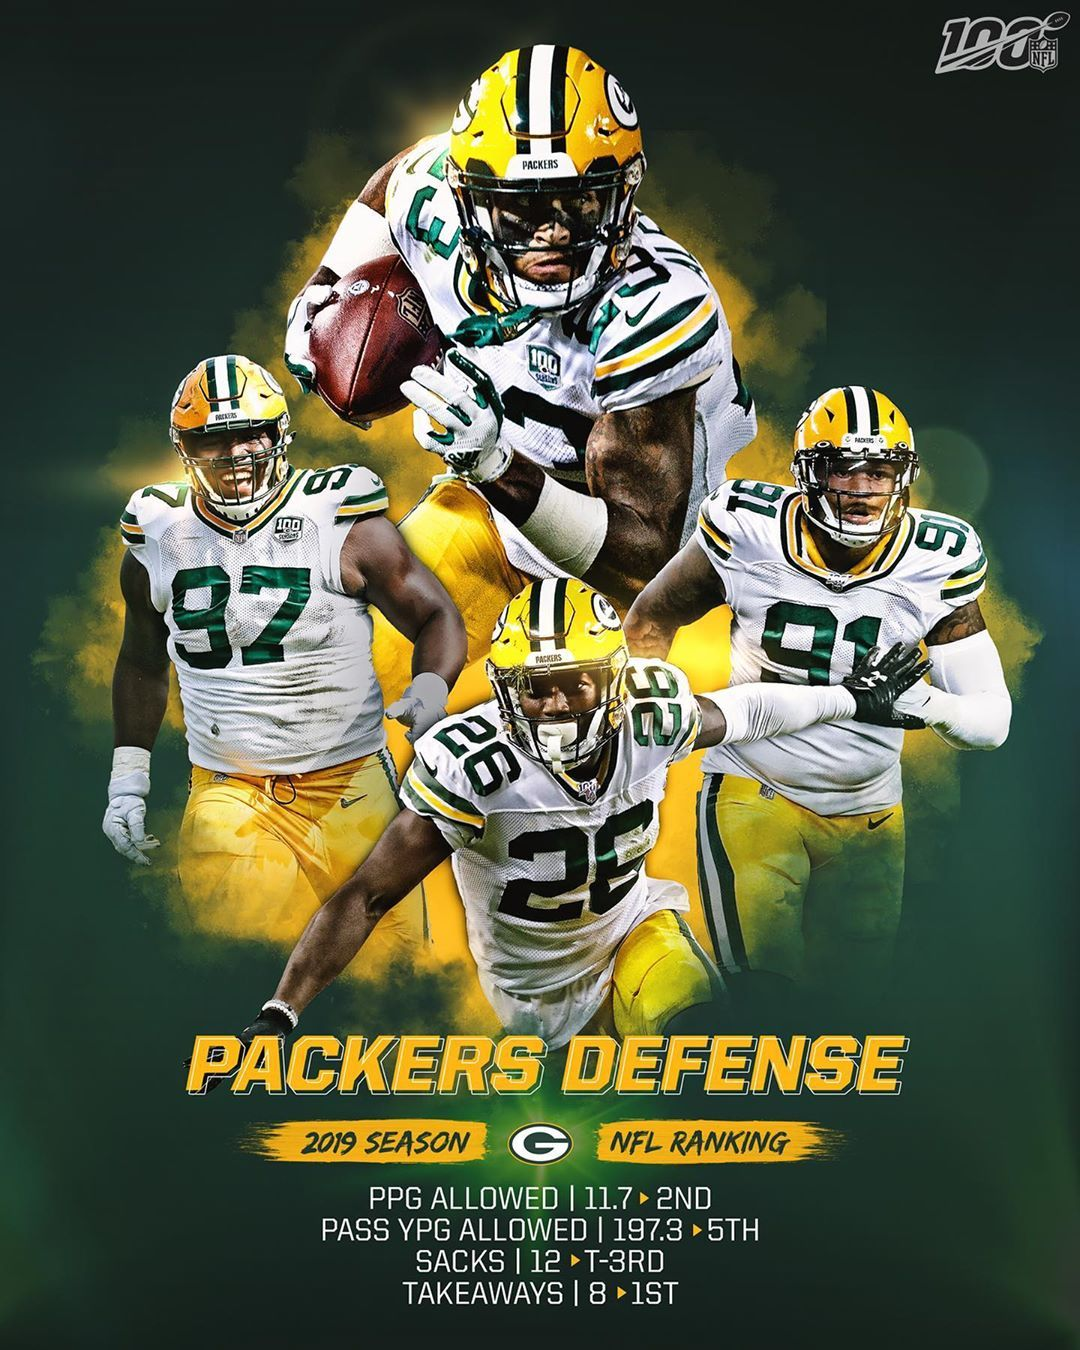 Nfl Packers Defense Is One Of The Best In The Business Big4 Bigfour Big4 Bigfour Big4 Bigfour Nfl Packers Packers Green Bay Packers Logo